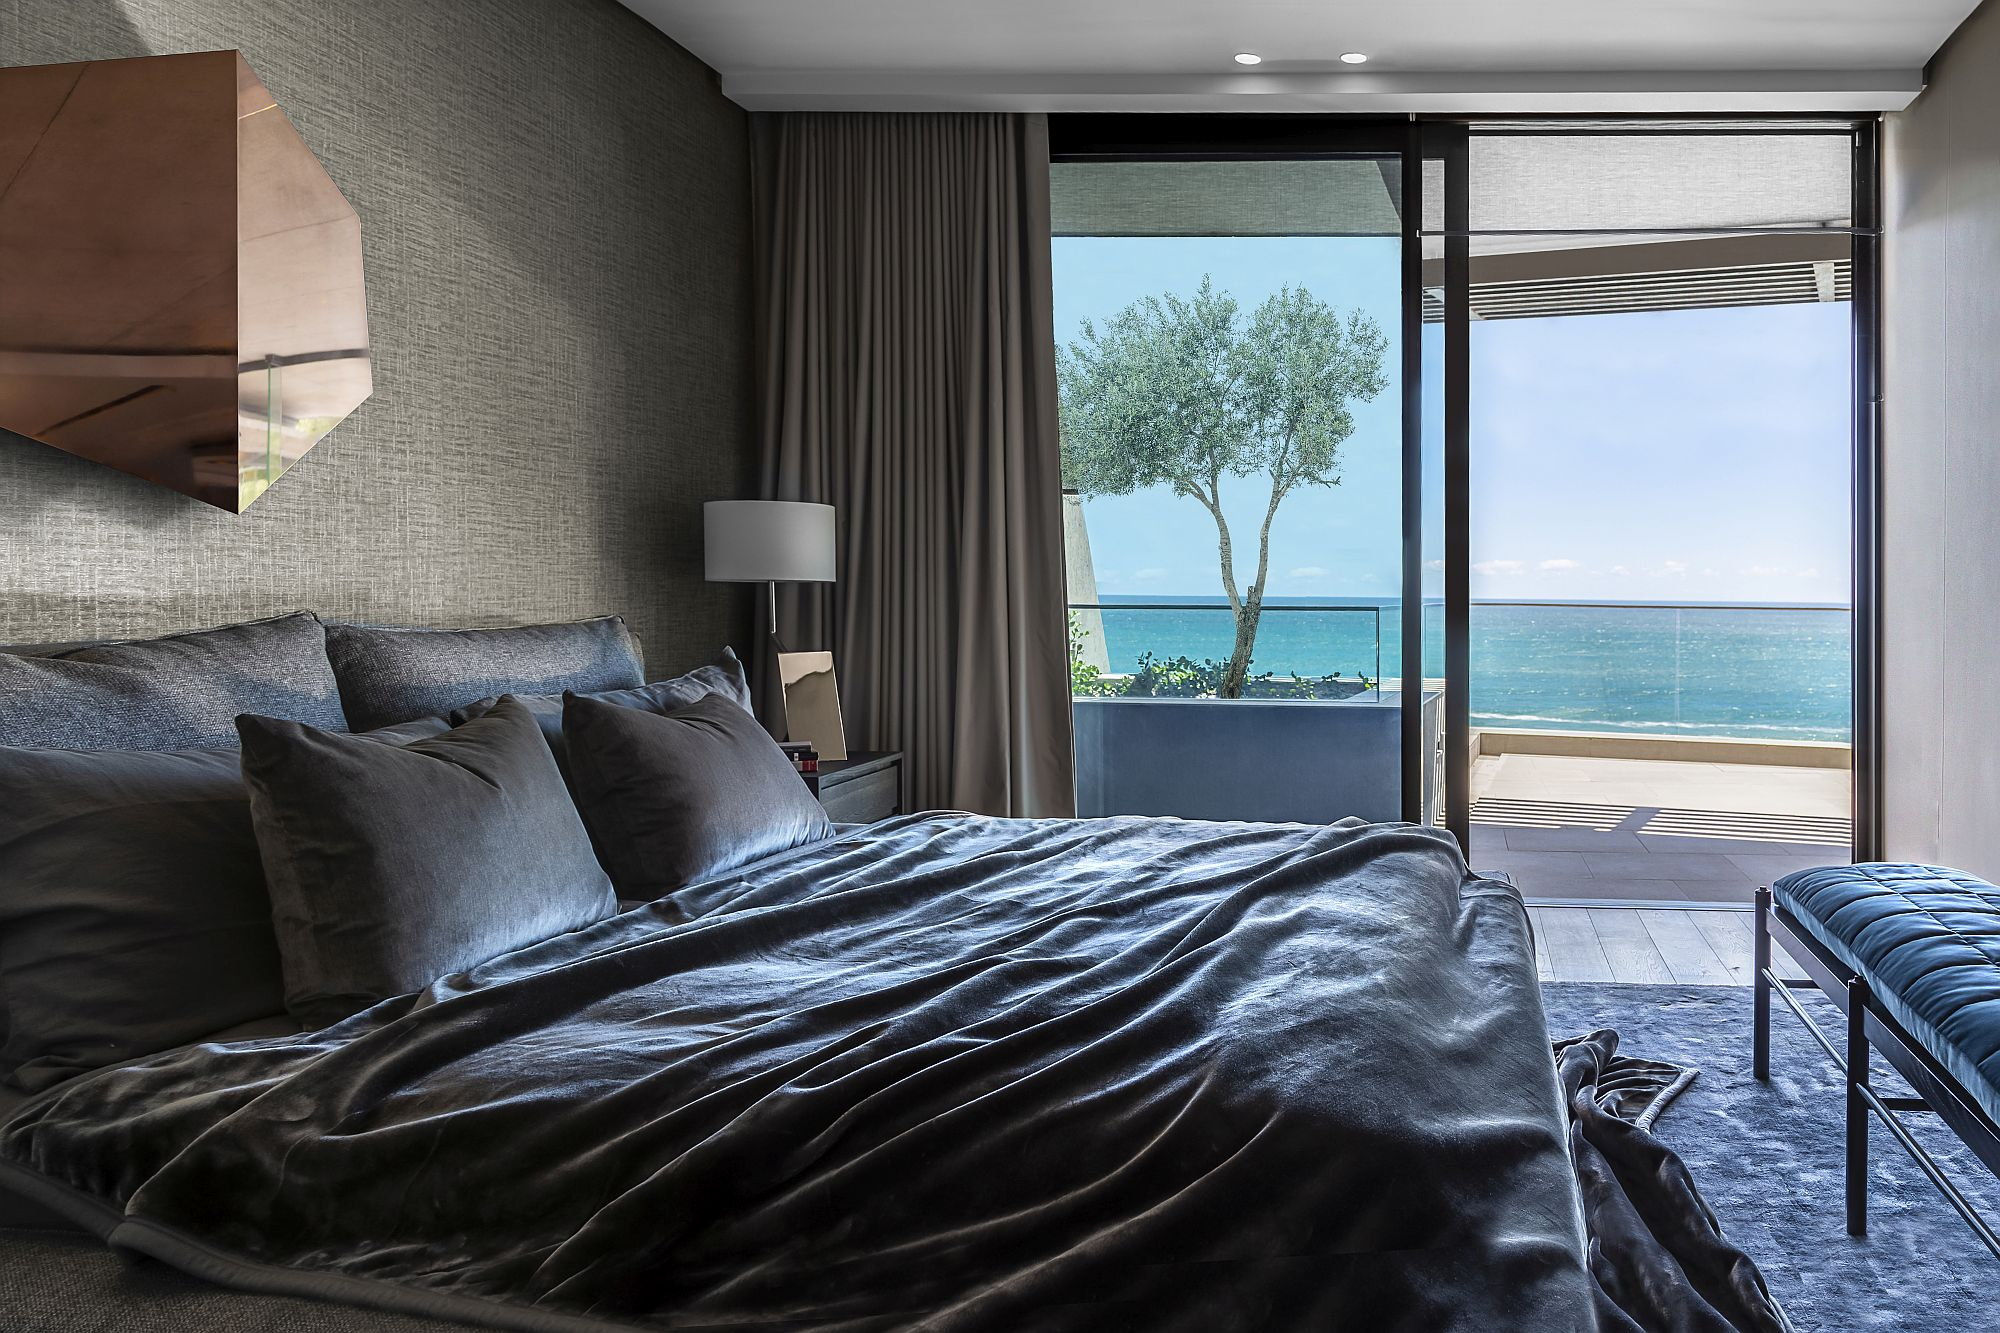 Besopke-bench-bed-designed-for-the-posh-bedroom-with-ocean-views